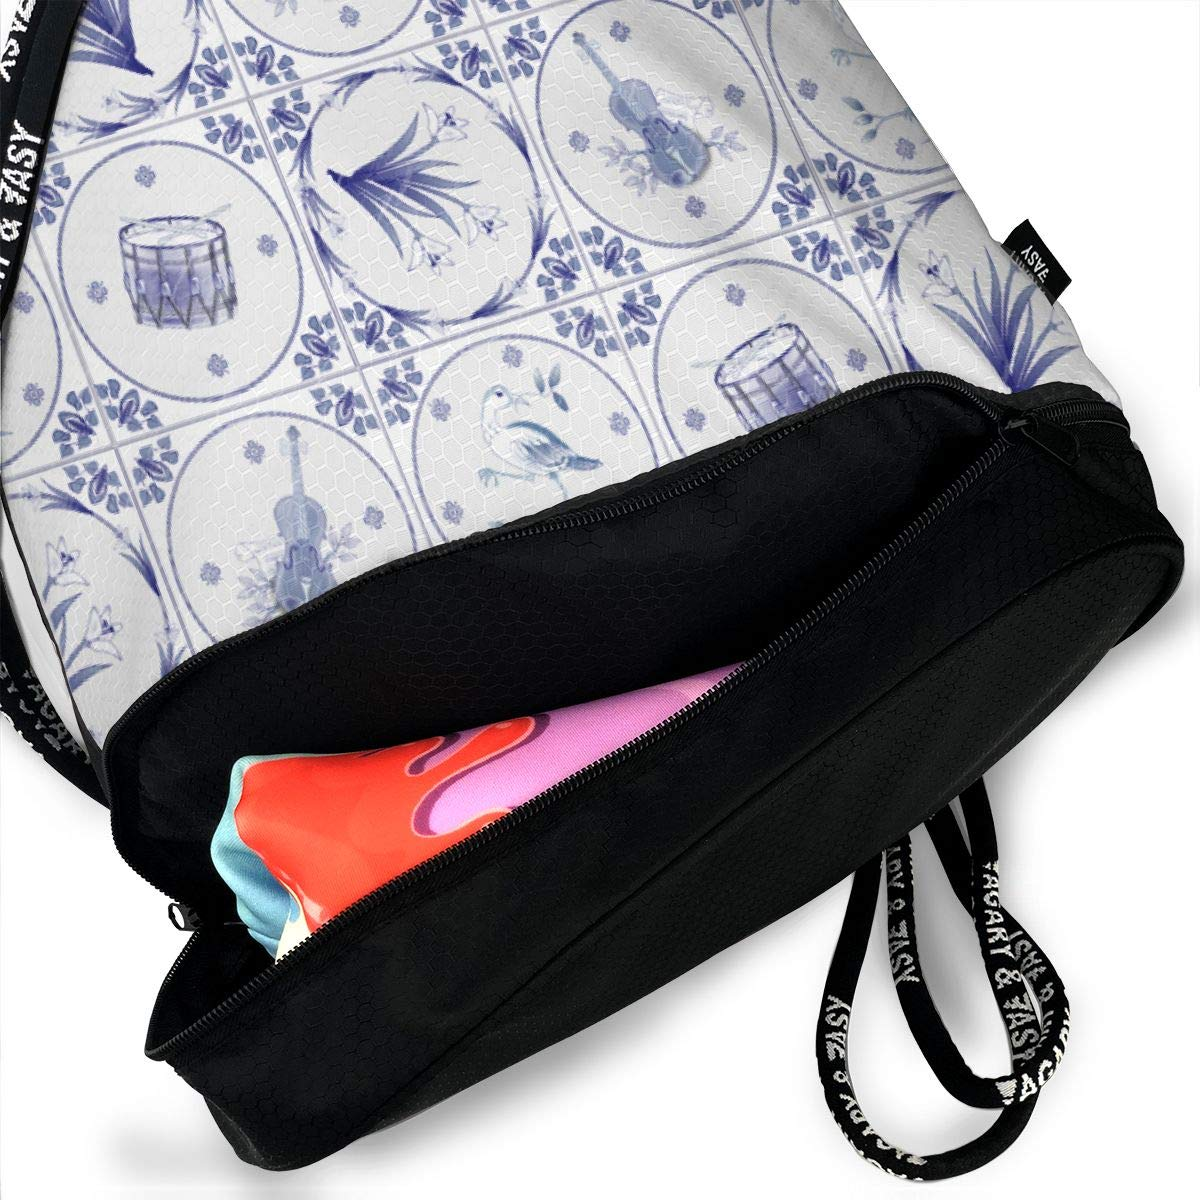 Delft Tiles Drawstring Backpack Sports Athletic Gym Cinch Sack String Storage Bags for Hiking Travel Beach